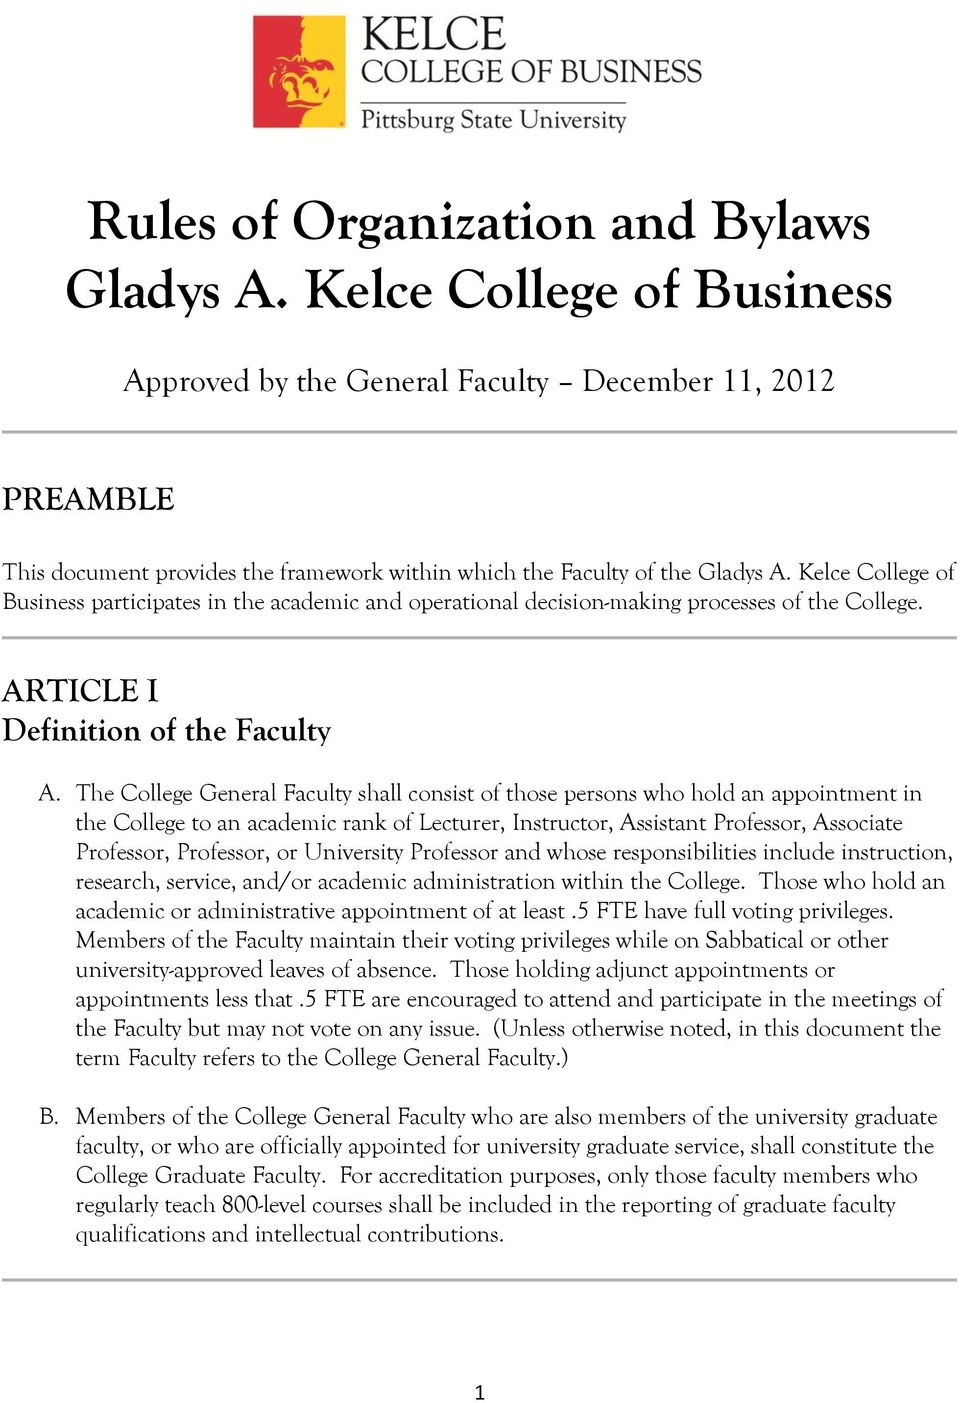 Kelce College of Business participates in the academic and operational decision-making processes of the College. ARTICLE I Definition of the Faculty A.